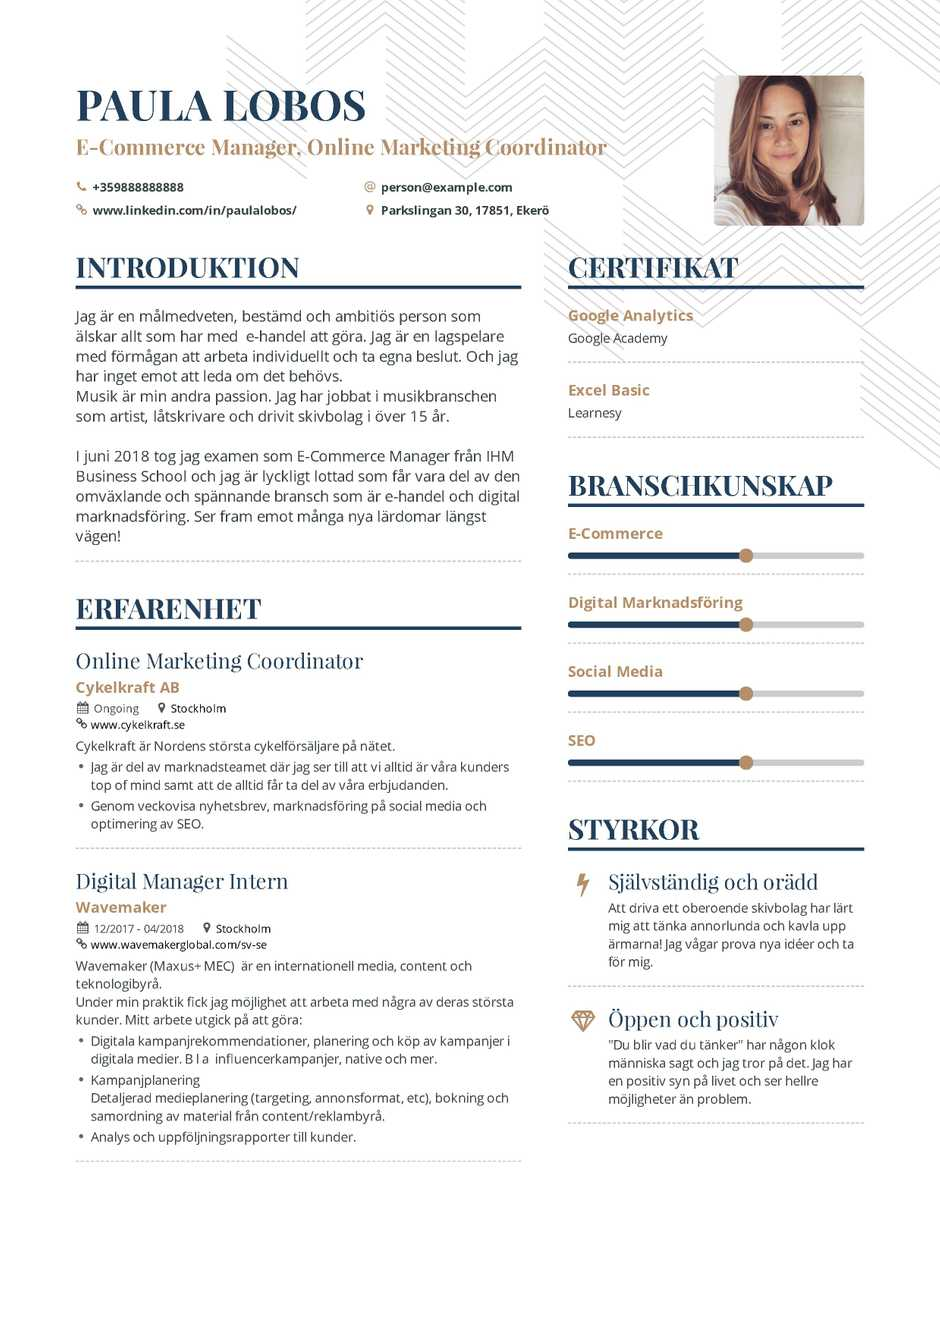 Ecommerce Marketing Resume Example And Guide For 2019